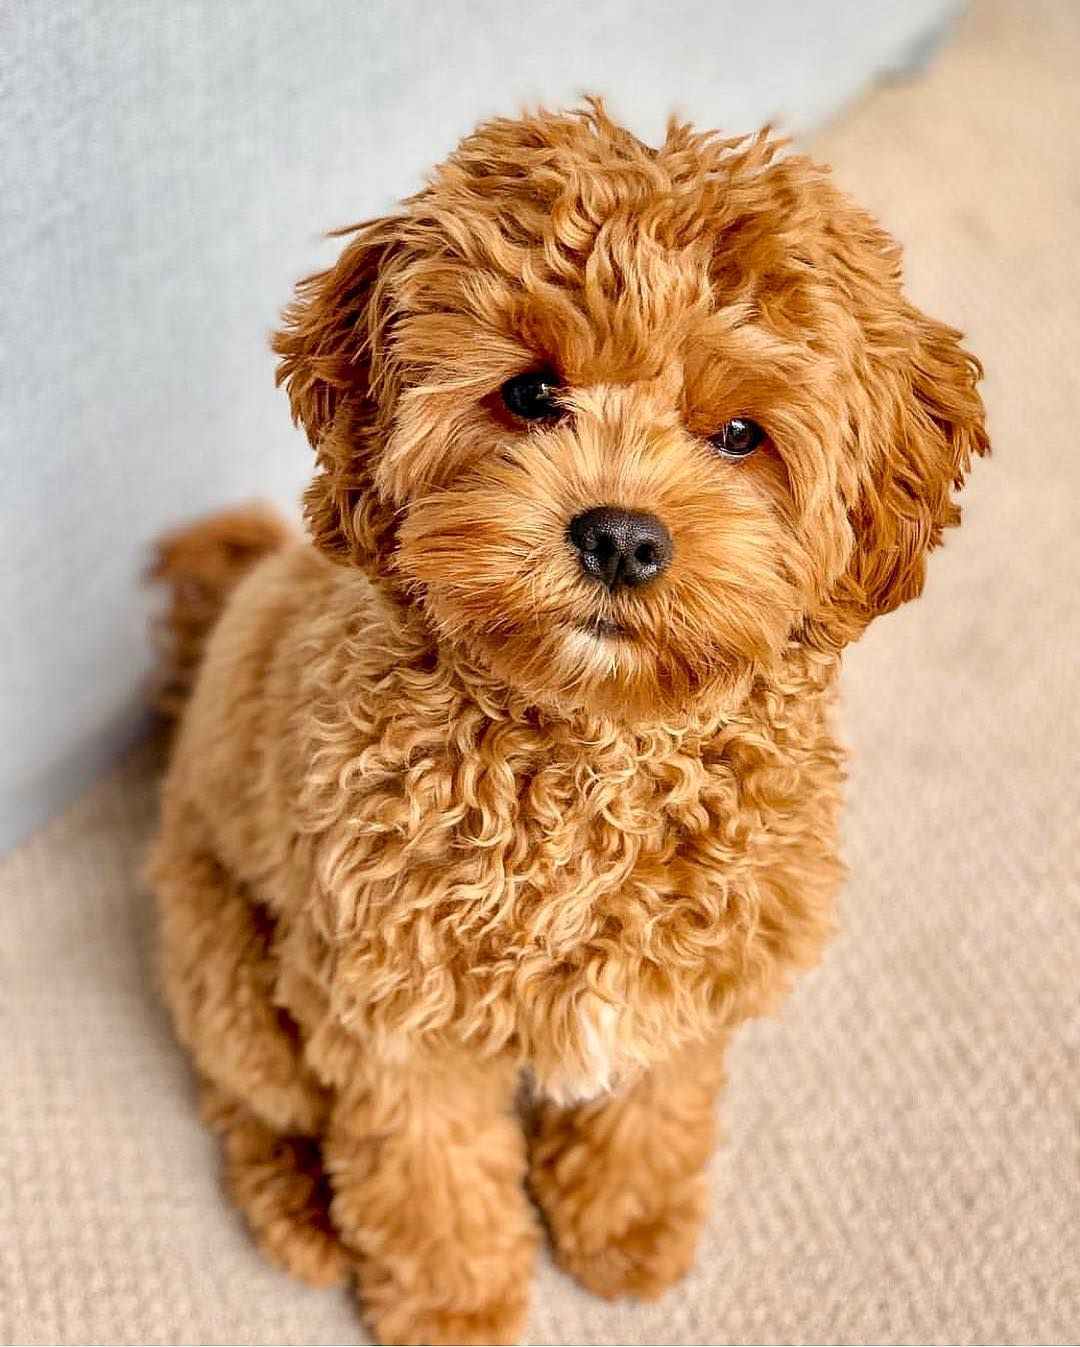 Spotlighting Cavapoos/Cavoodles and Cavapoo/Cavoodle mixes